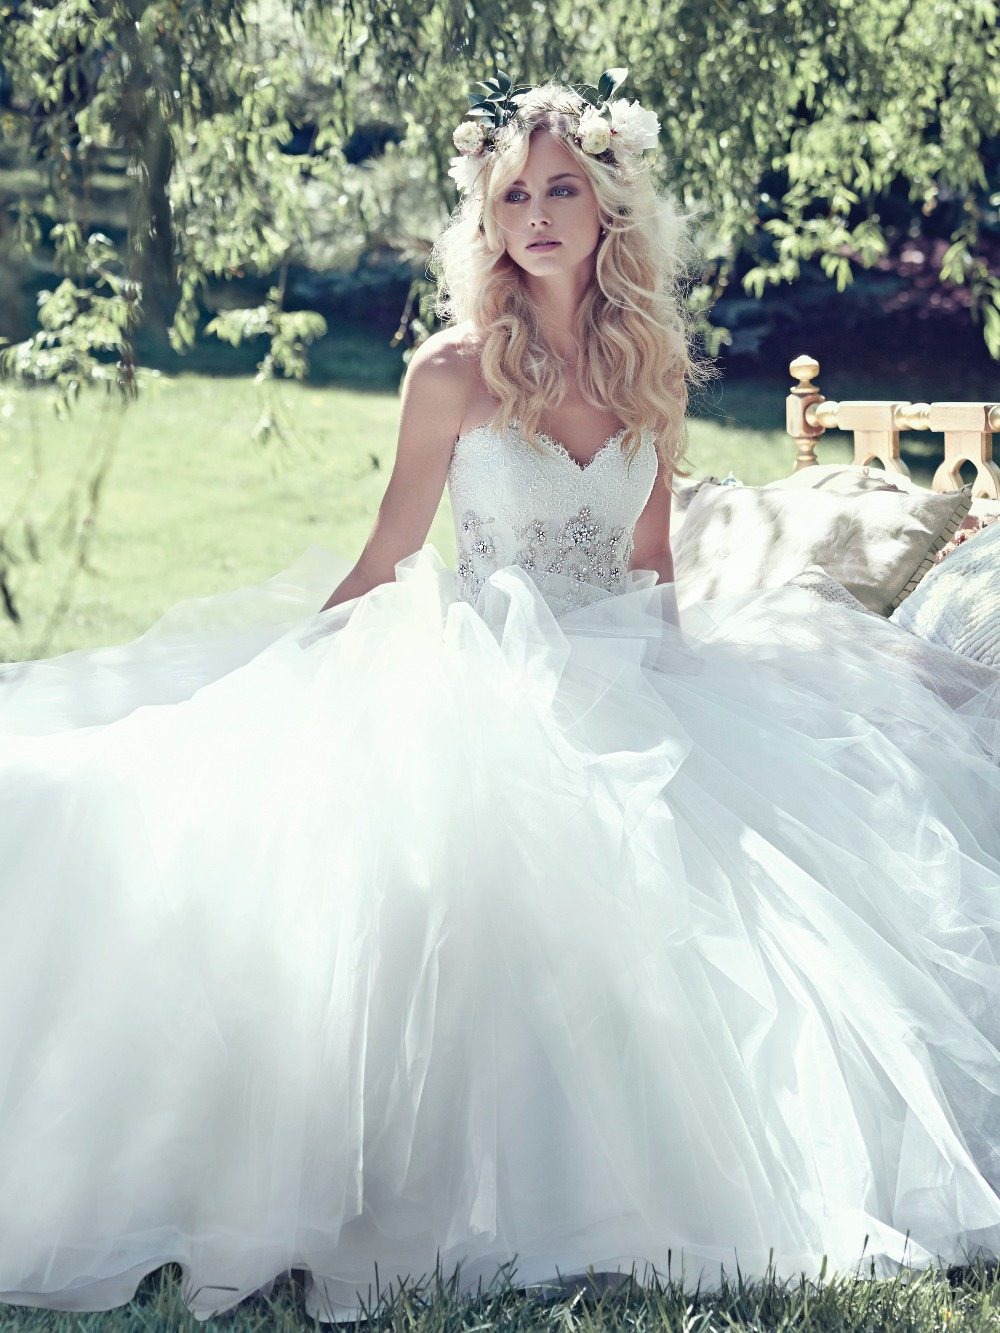 e7f06ad5ca27 Tulle Skirt Ball Gown Wedding Dress